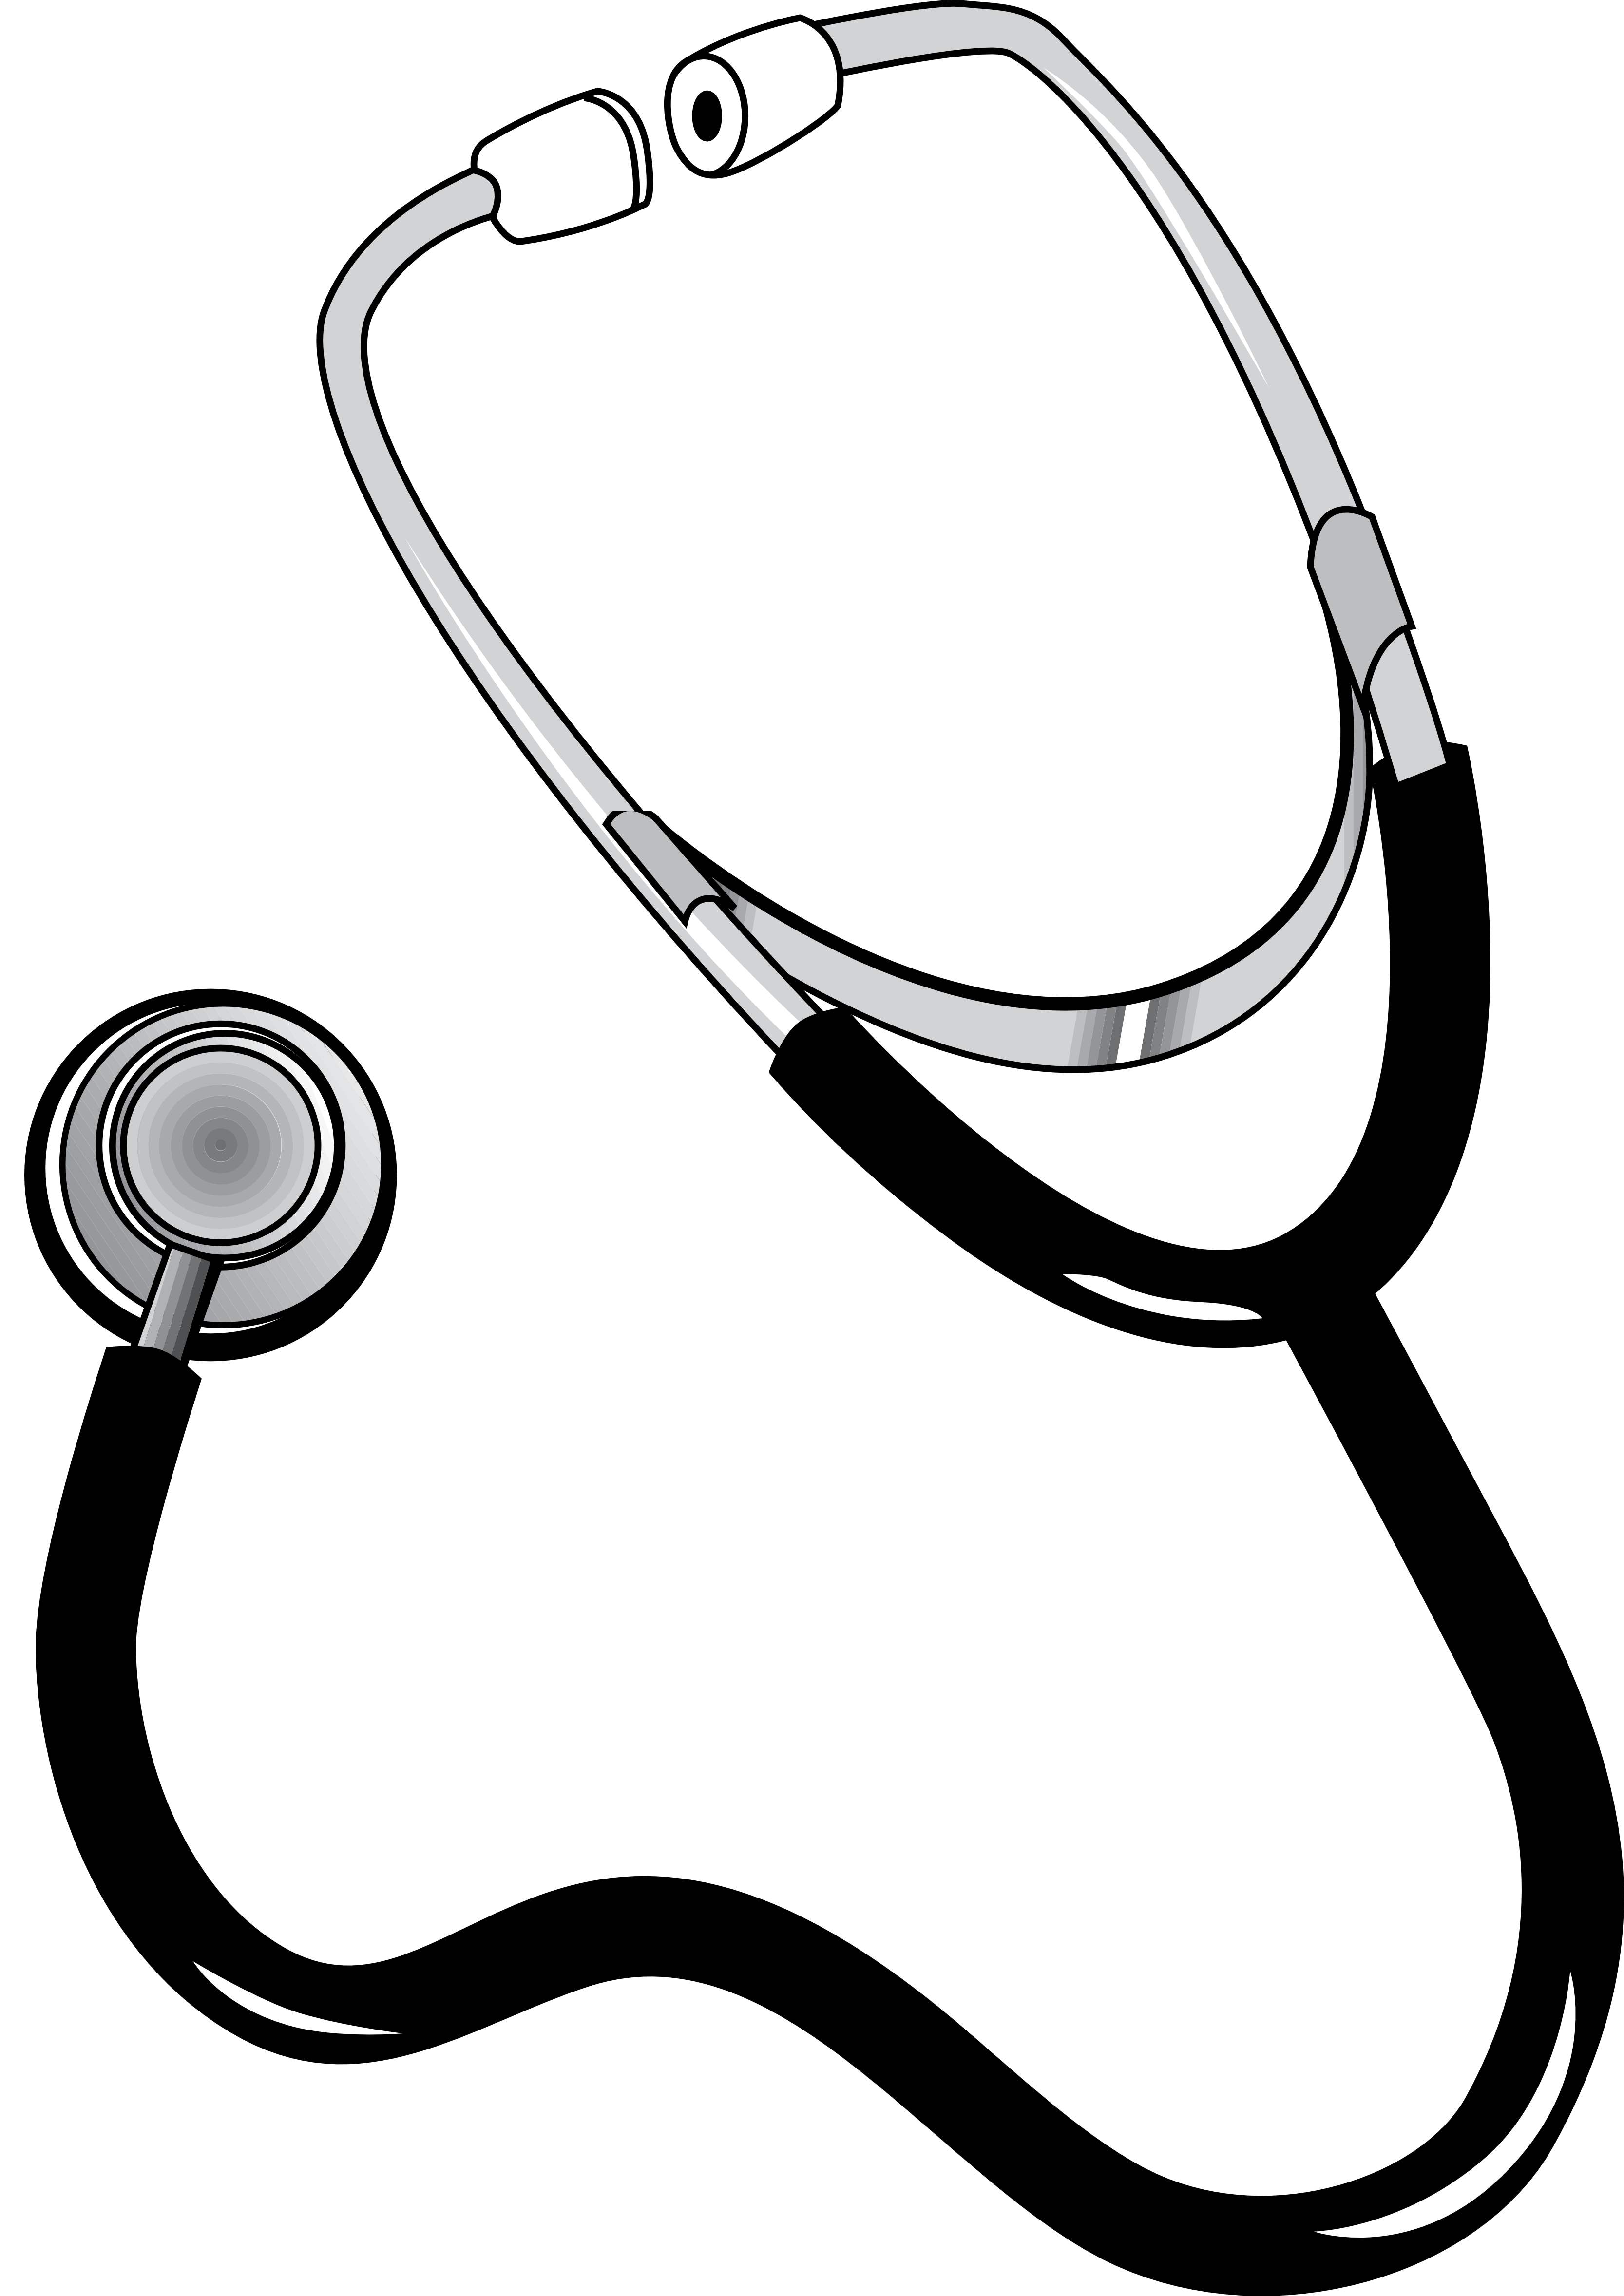 Stethoscope Black White Line Art Coloring Book Colouring Px Free